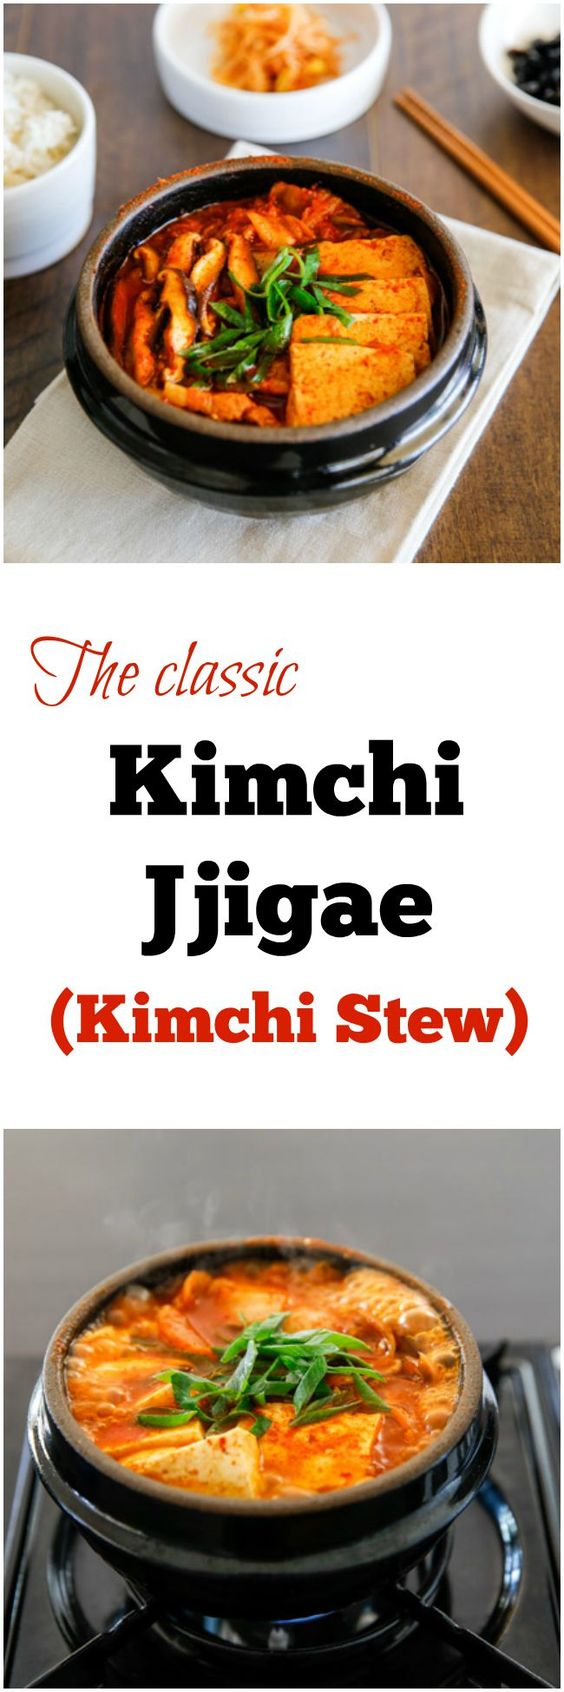 The classic Kimchi Jjigae (Kimchi stew) recipe with some fatty pork ...